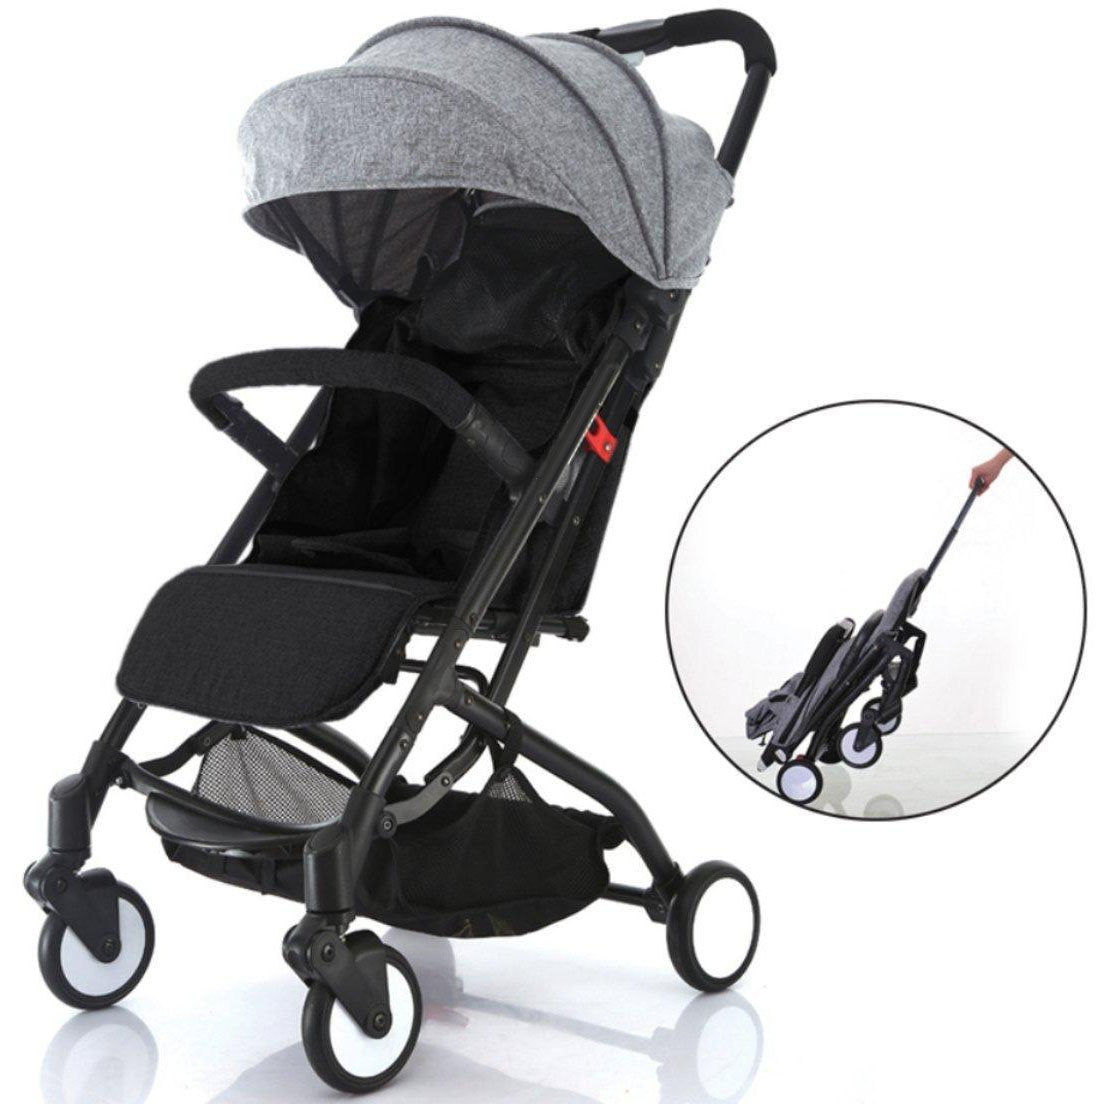 Lightweight Compact Travel Stroller - One Hand Fold